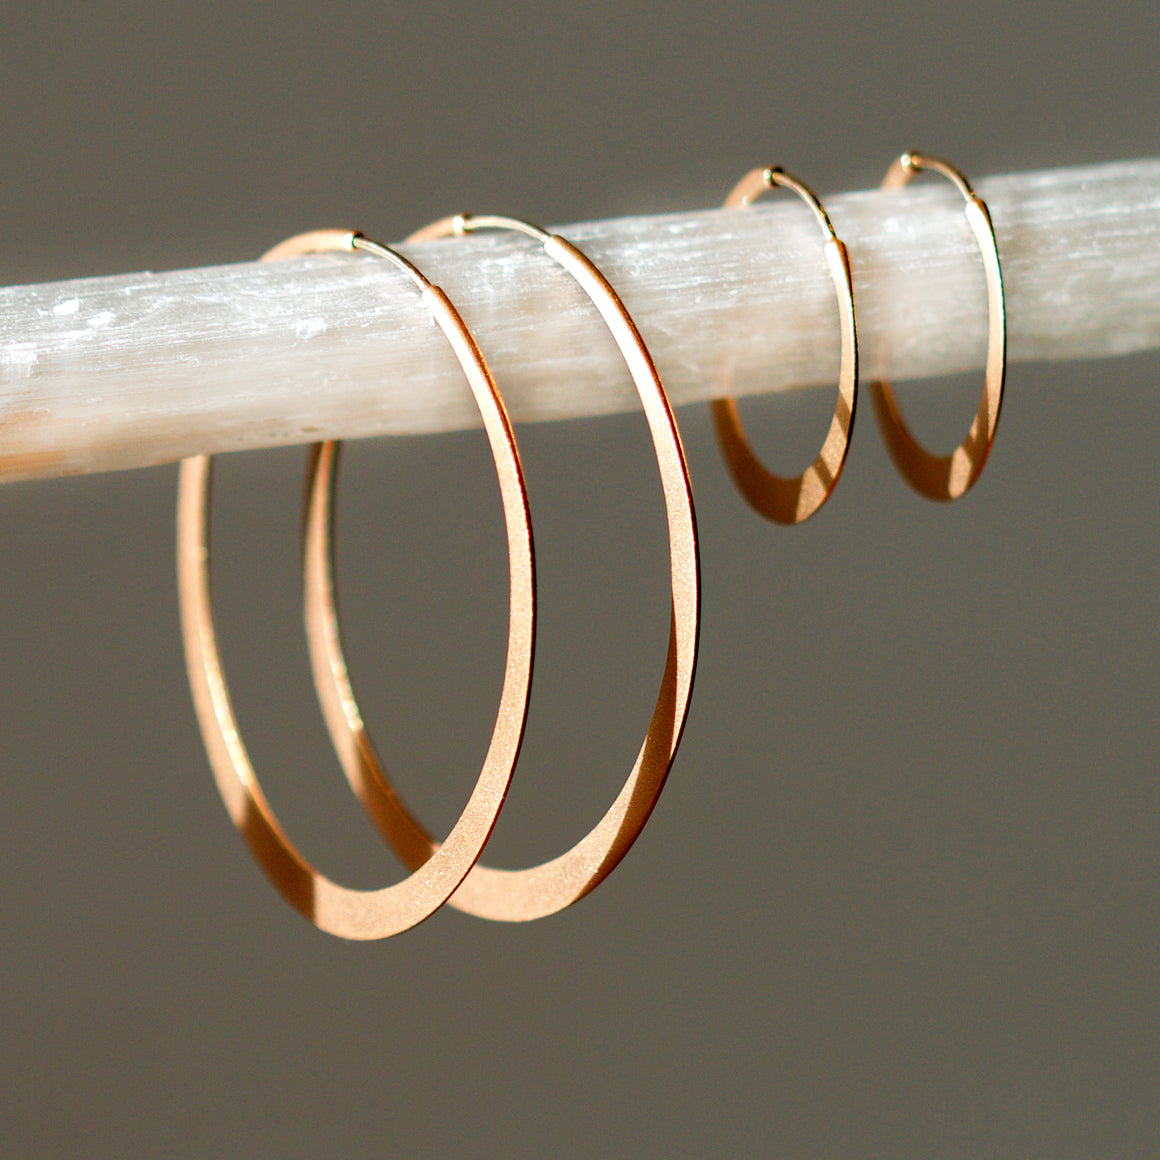 Endless Hoop Earrings in Polished Rose Gold - 2 inch